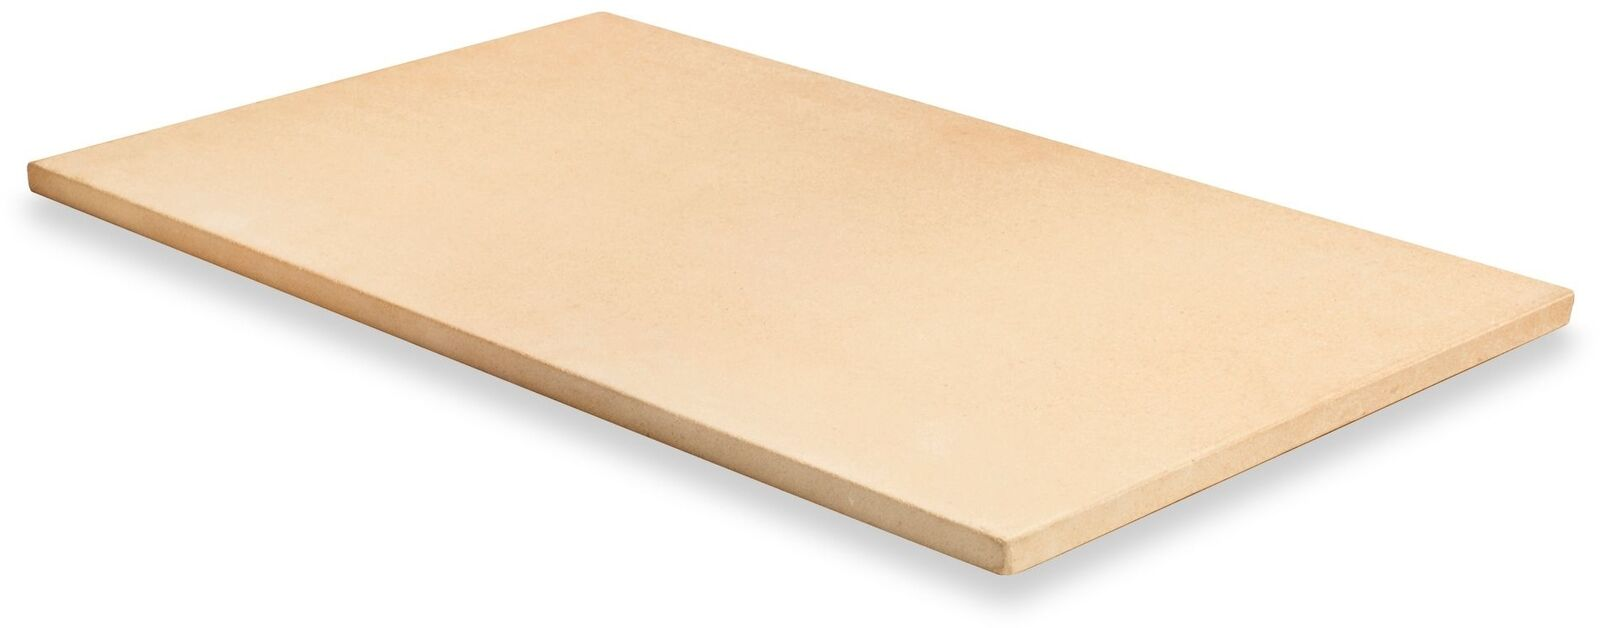 Home Baking Chef Pamperot Oven Large Pizza Cordierite Baking Stone Pan Natural